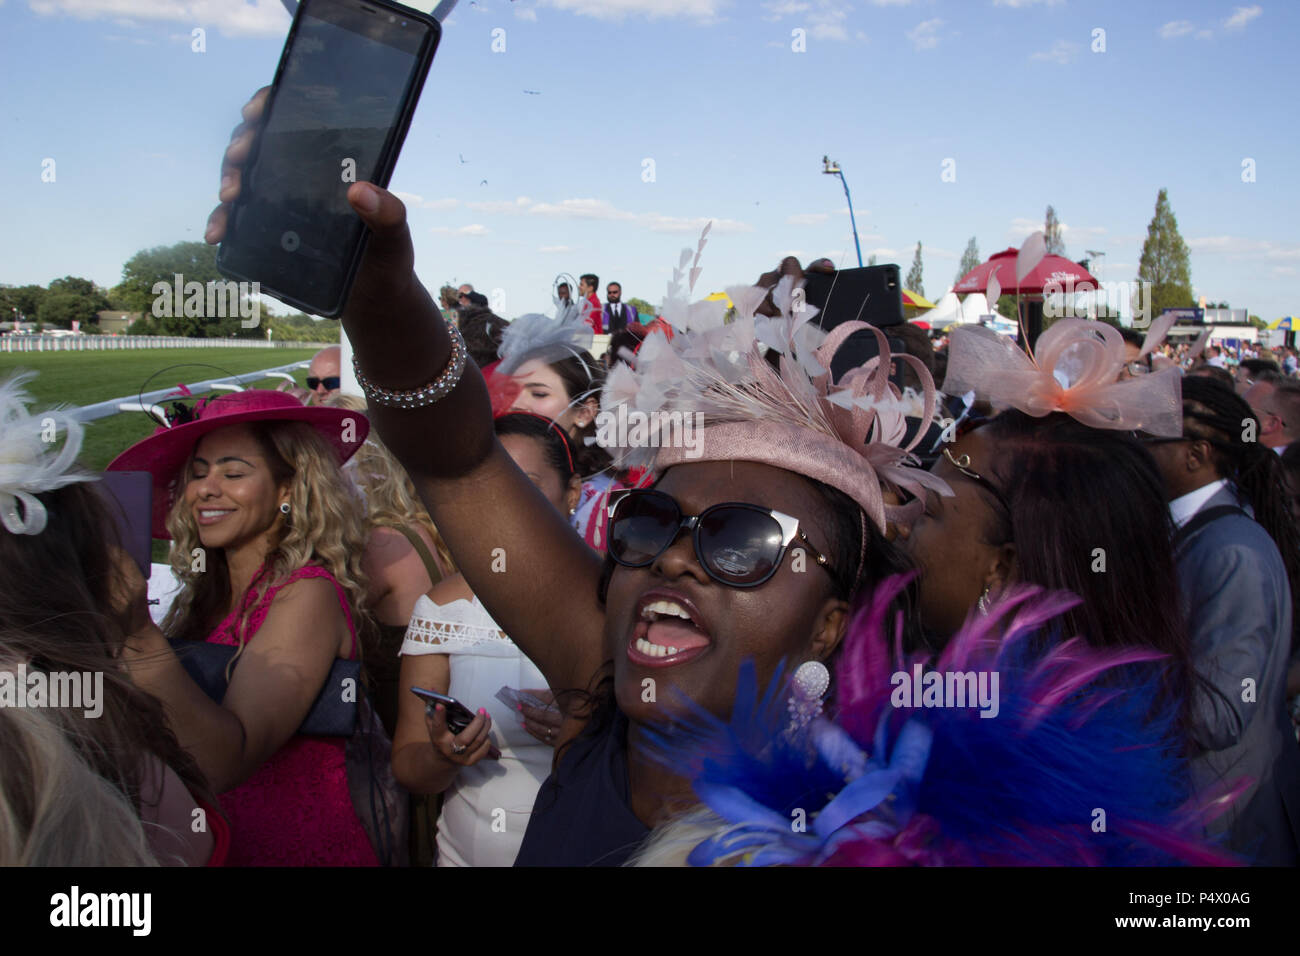 Rowdy crowds cheer on the horses at the side of the racetrack during Royal Ascot cup Stock Photo